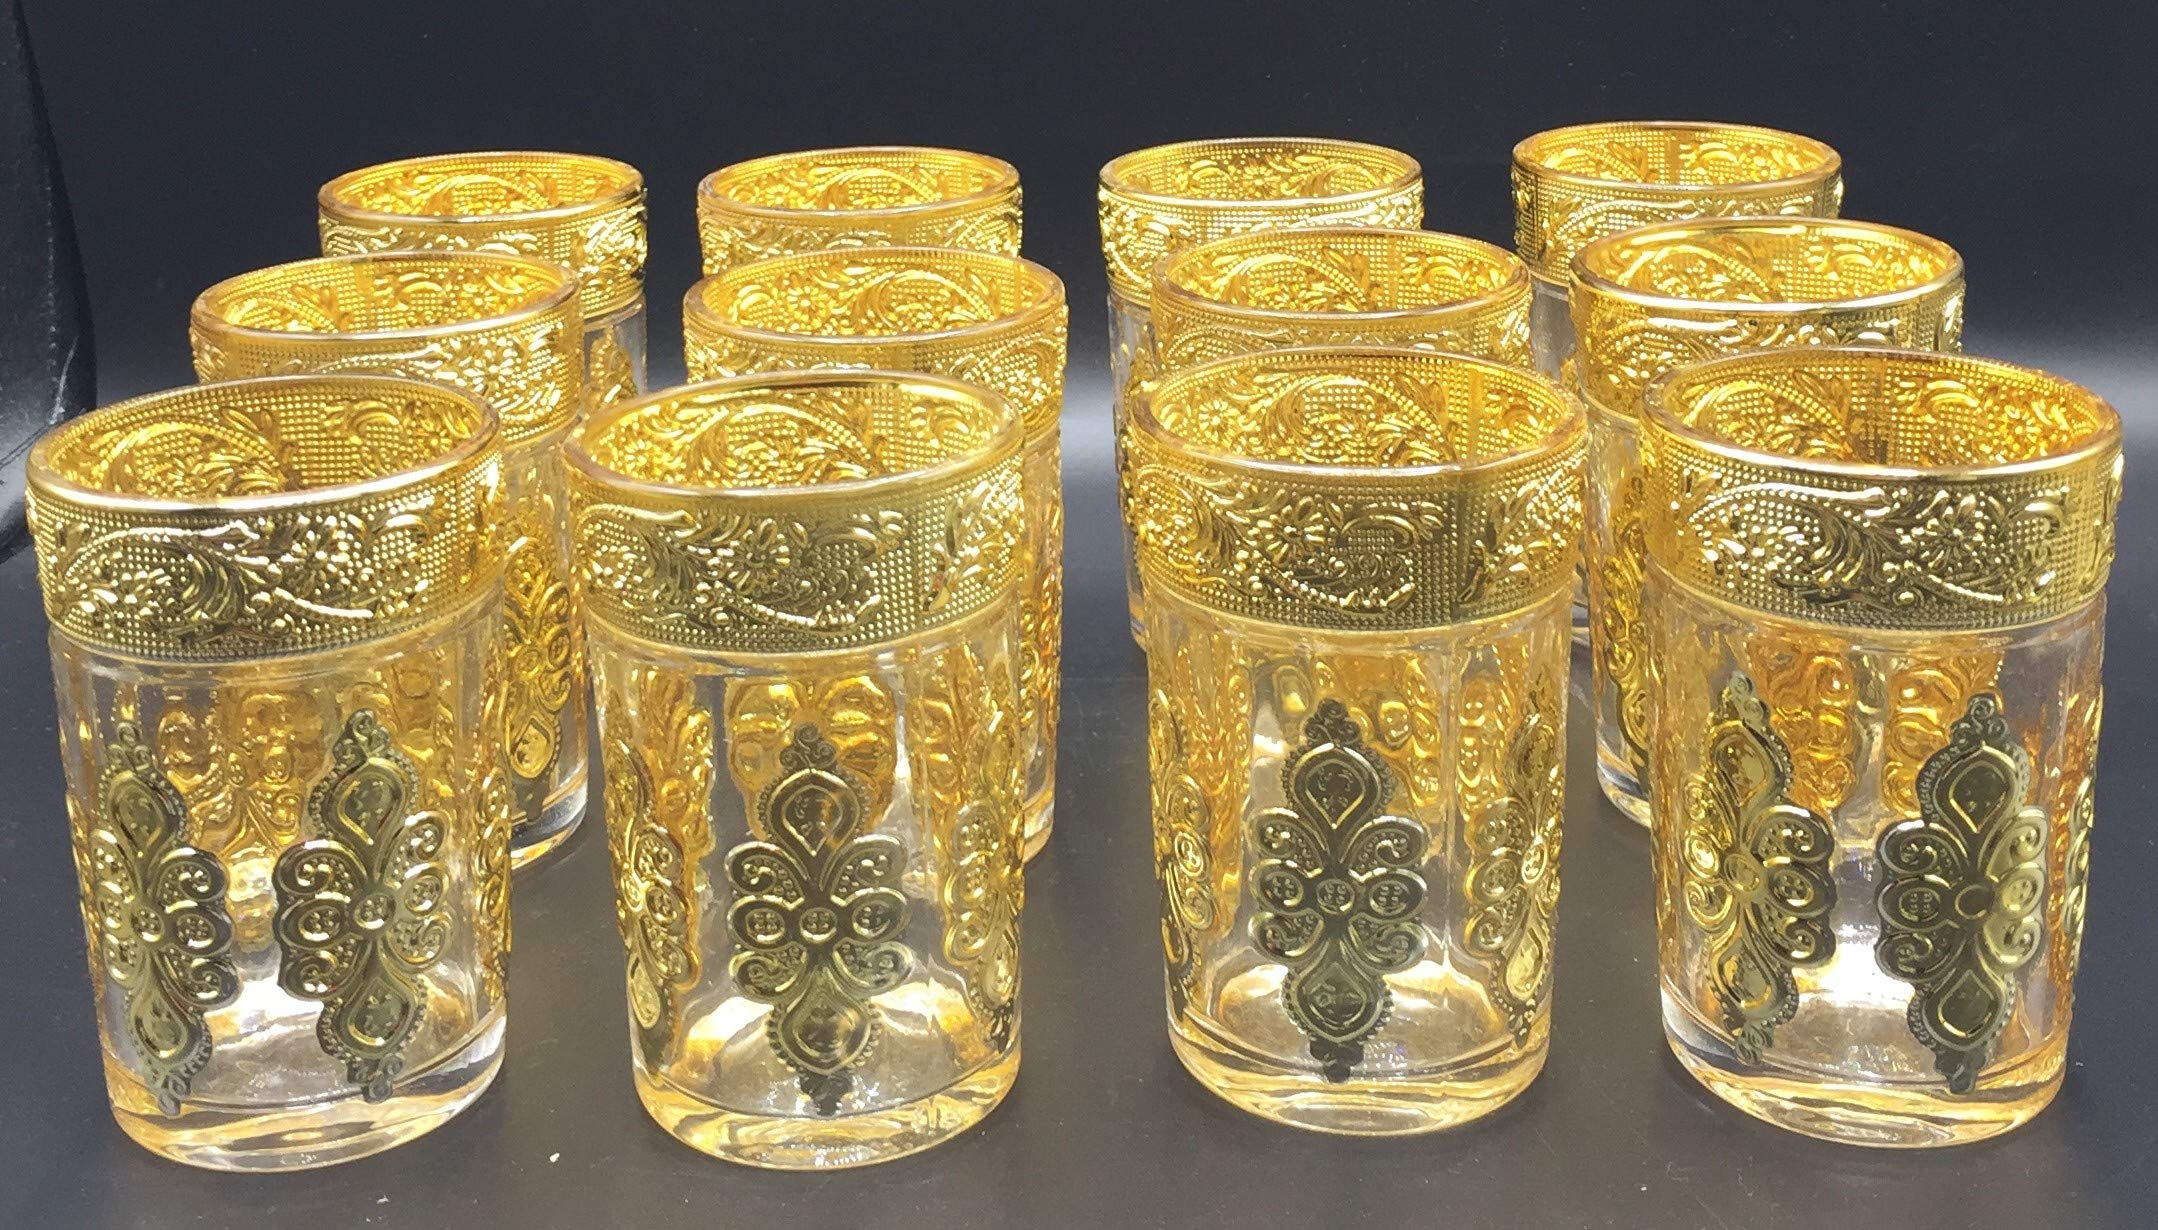 SL 12 Glass Moroccan Tea Glasses (Golden)